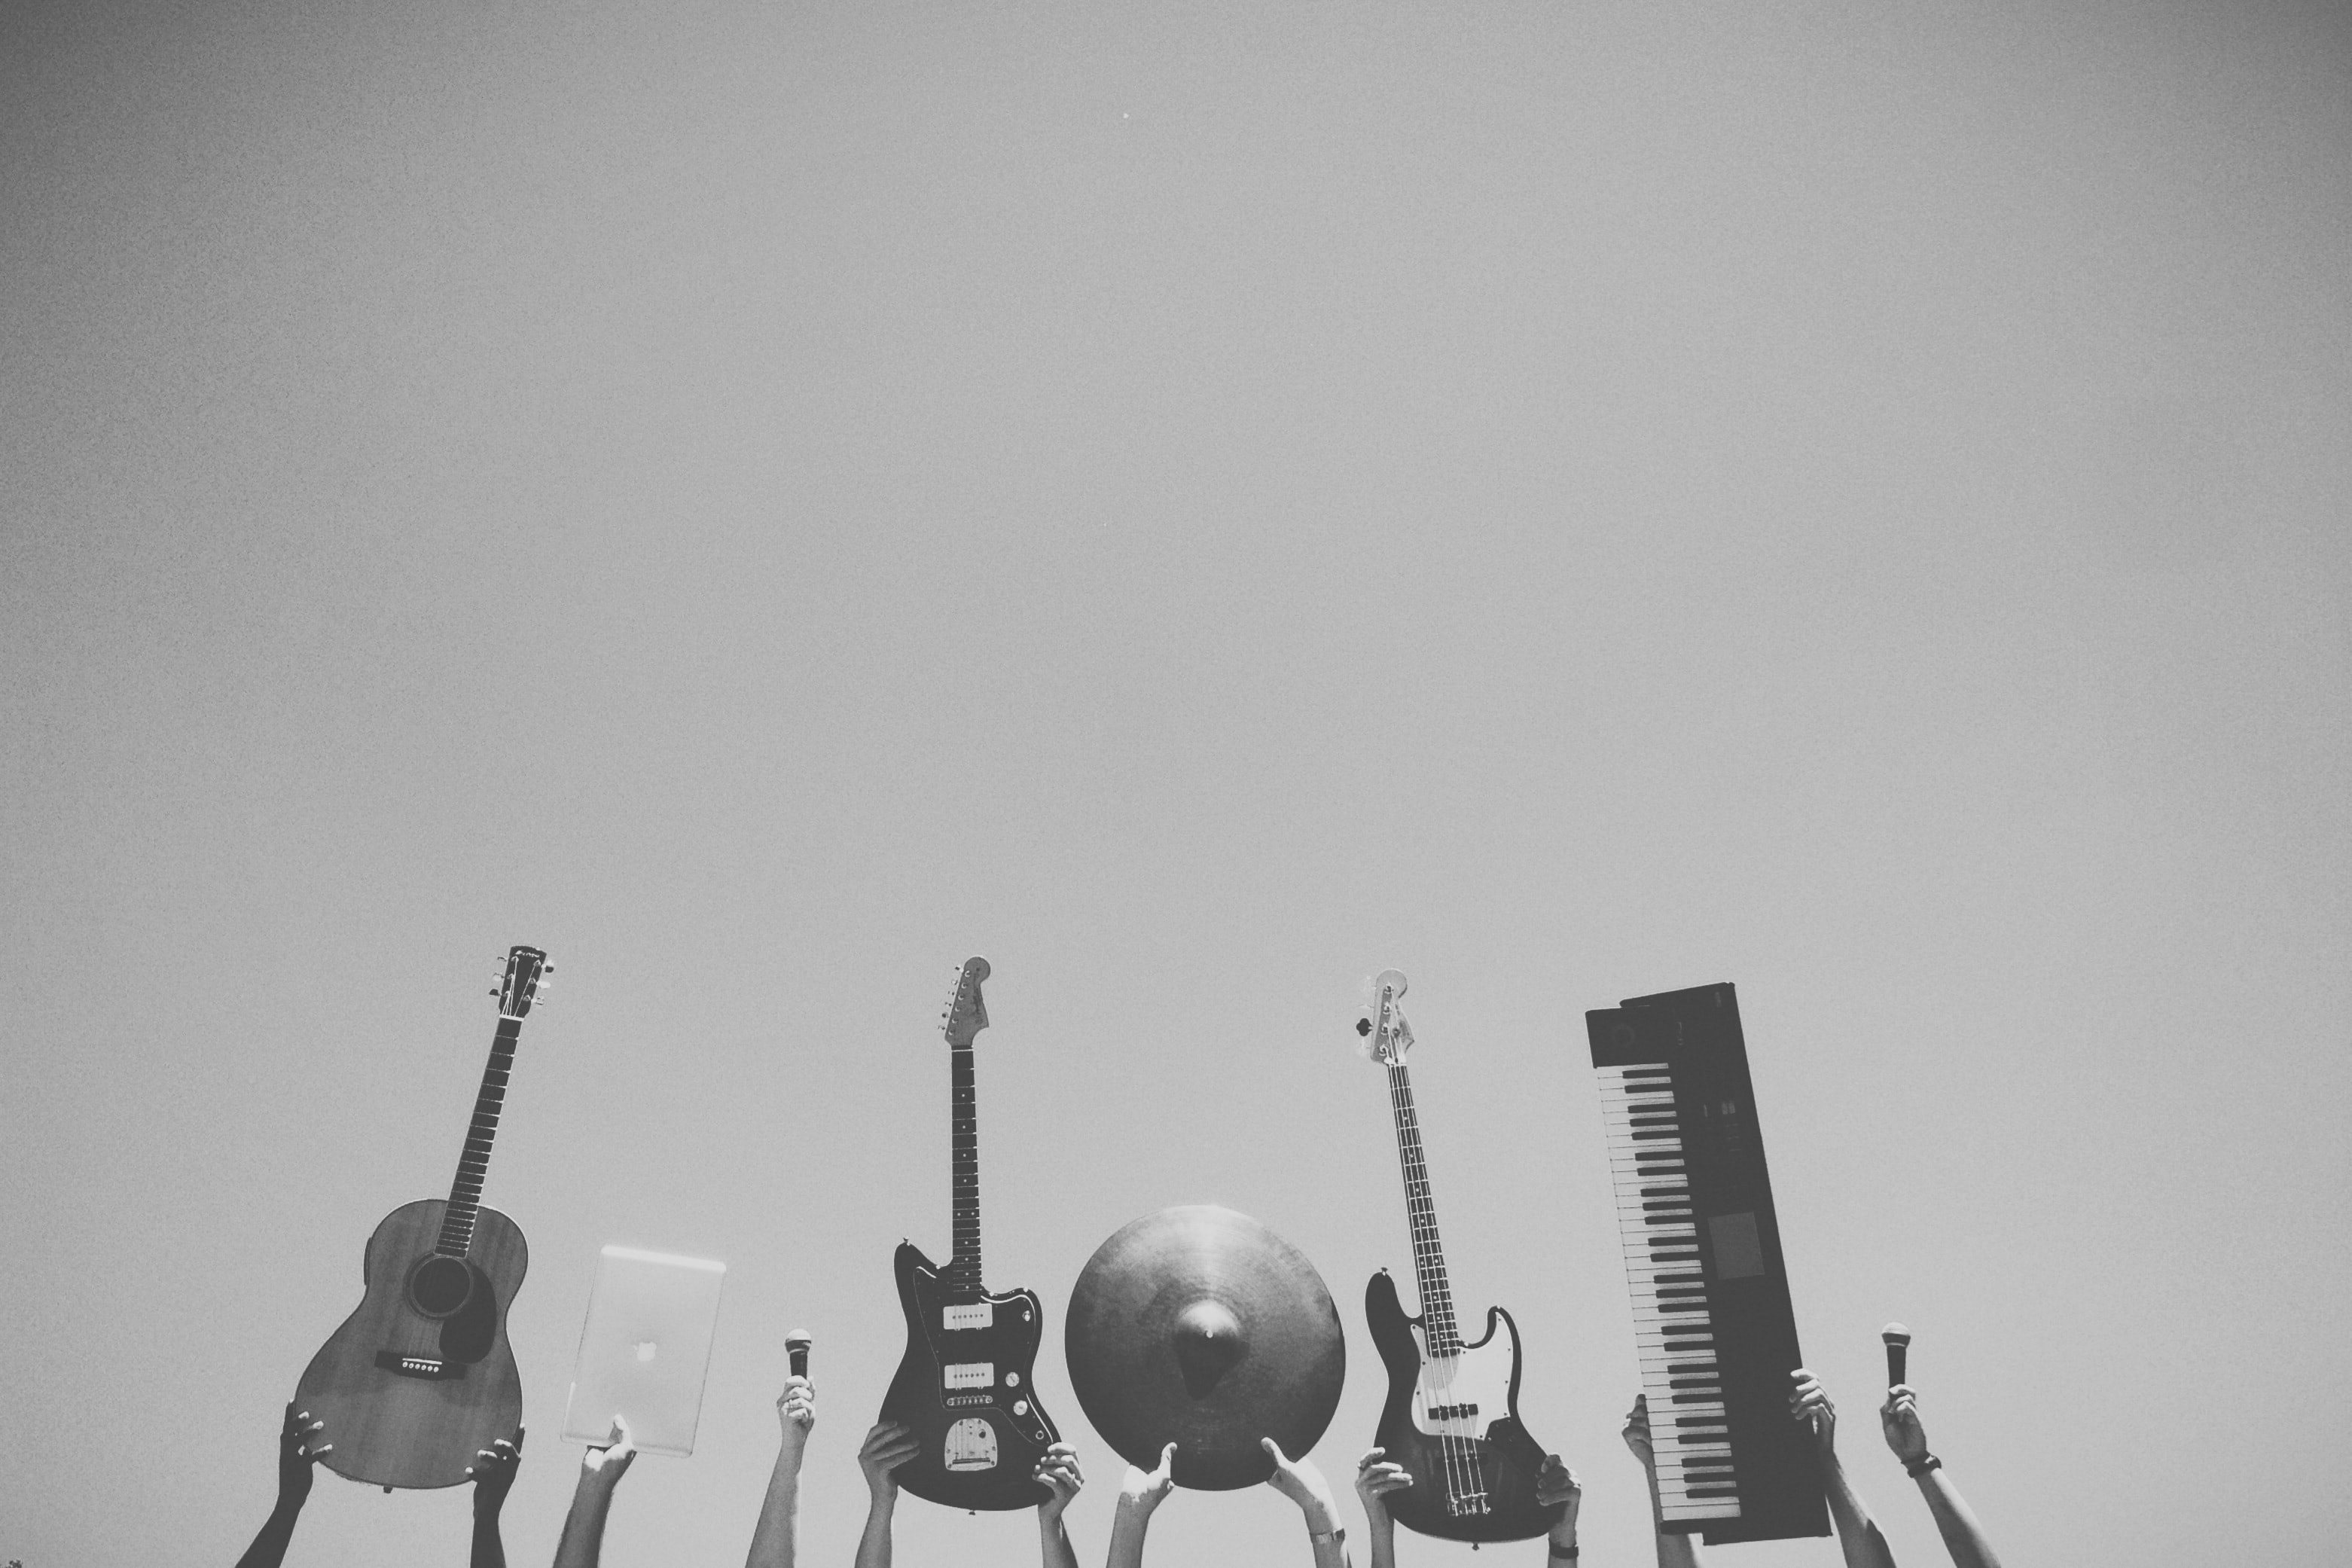 five musical instruments